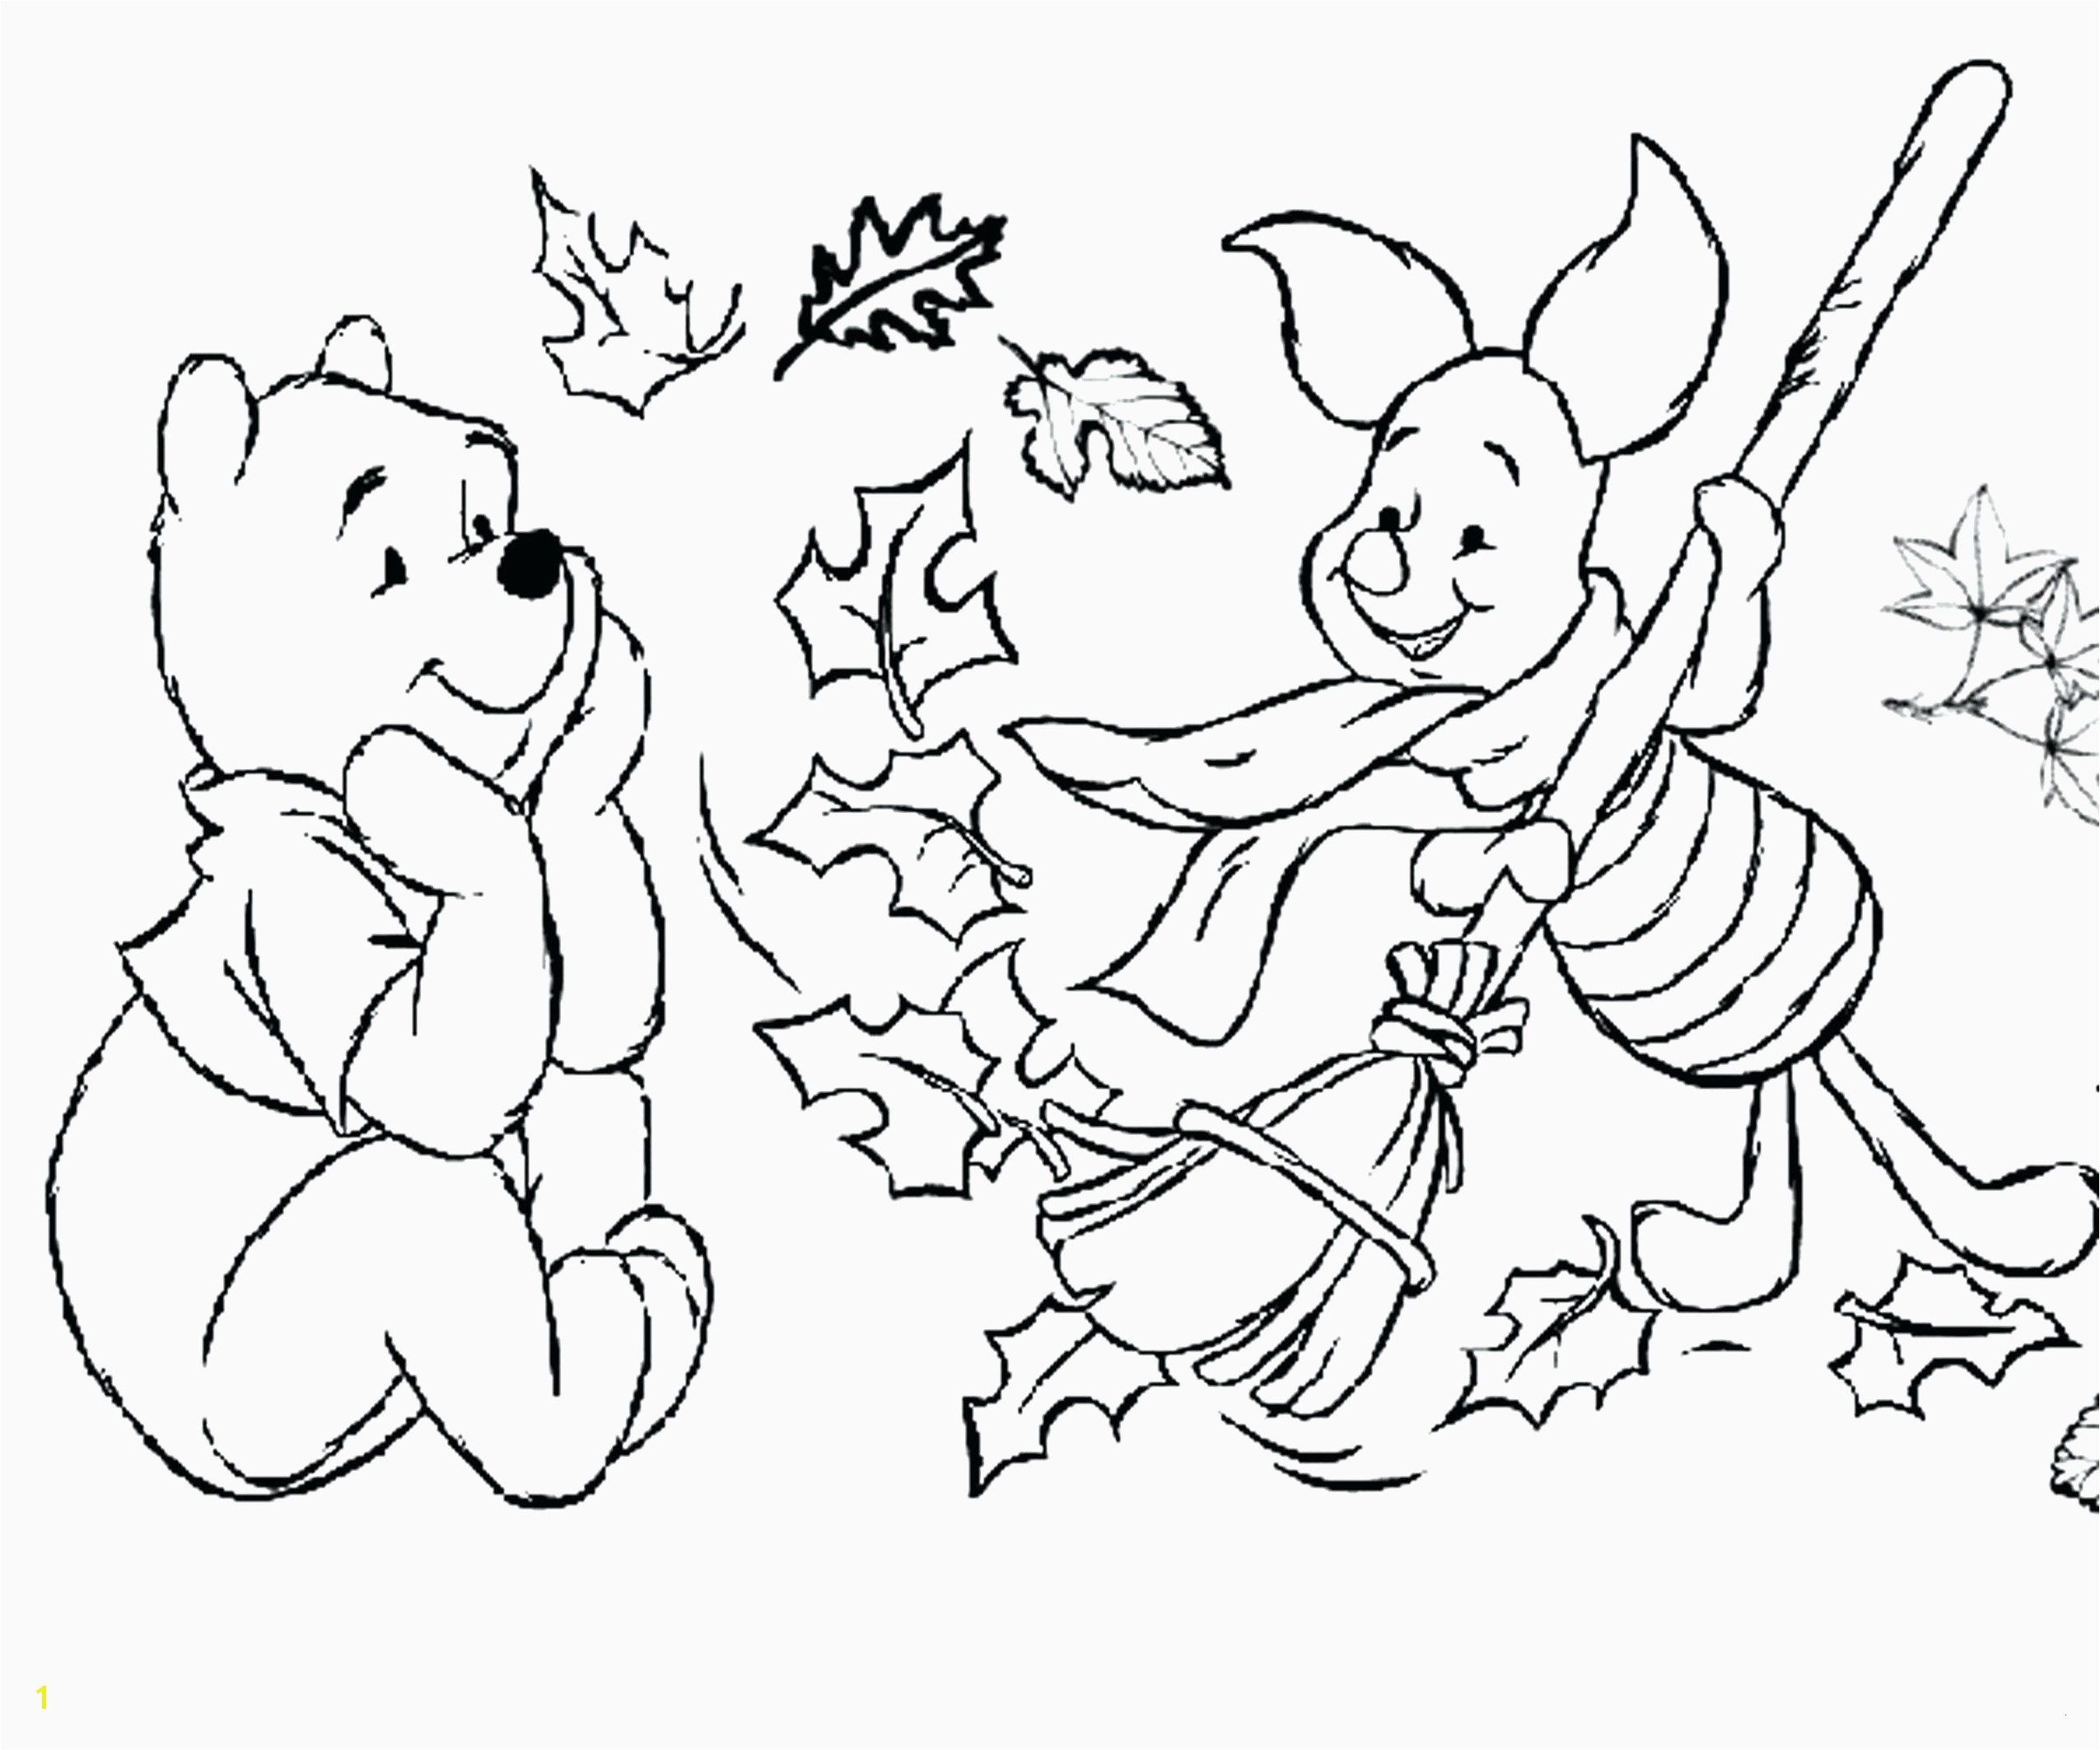 Special fer Preschool Fall Coloring Pages 7SL6 Coloring Pages For Children Great Preschool Fall Coloring Pages 0D